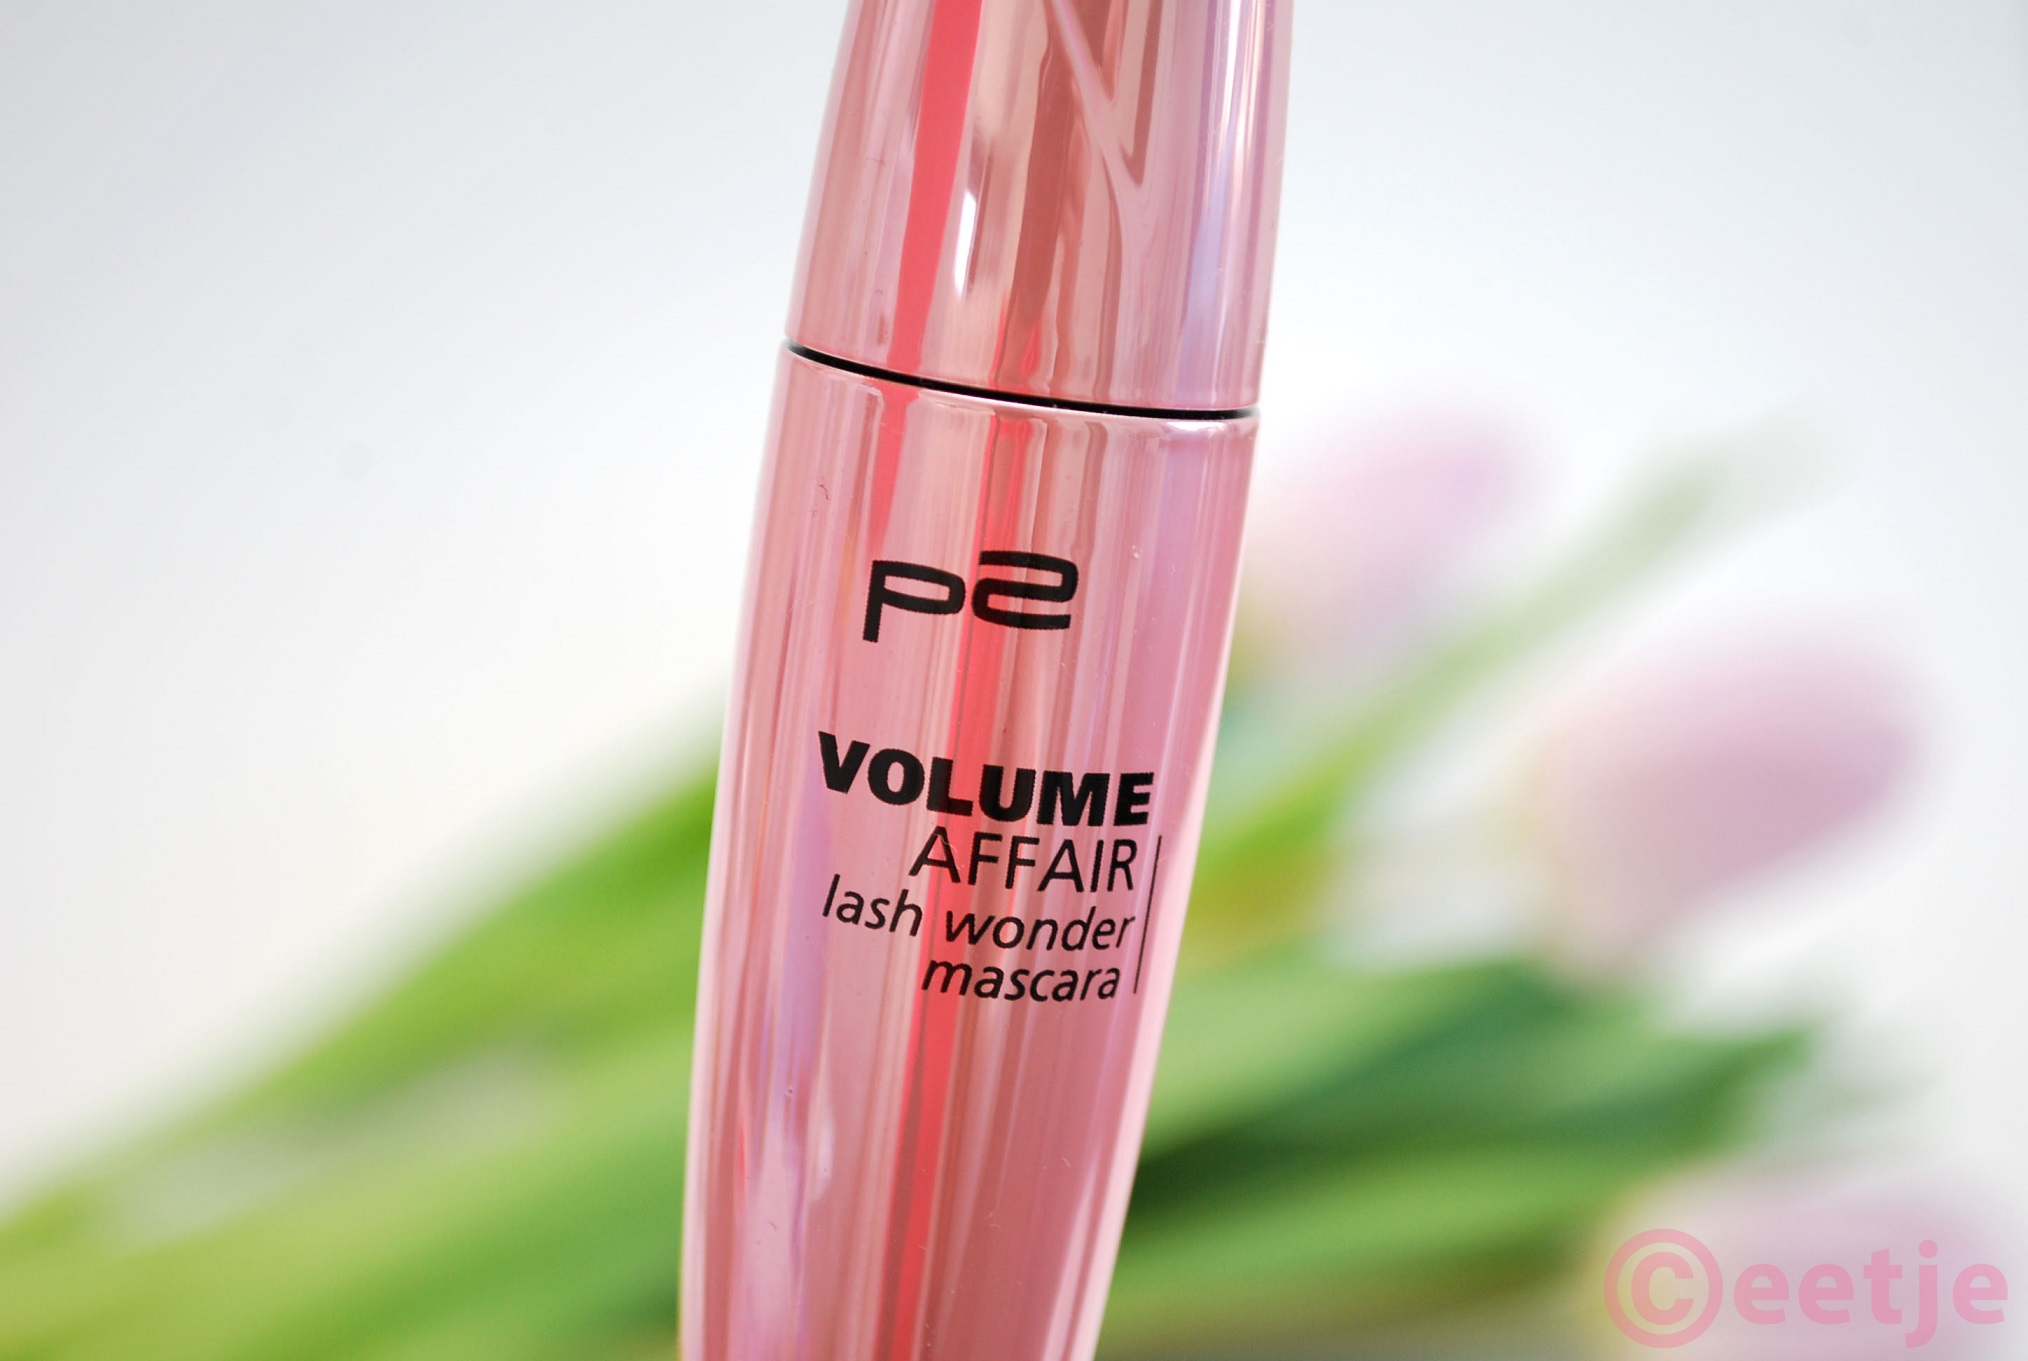 Review P2 volume affair mascara